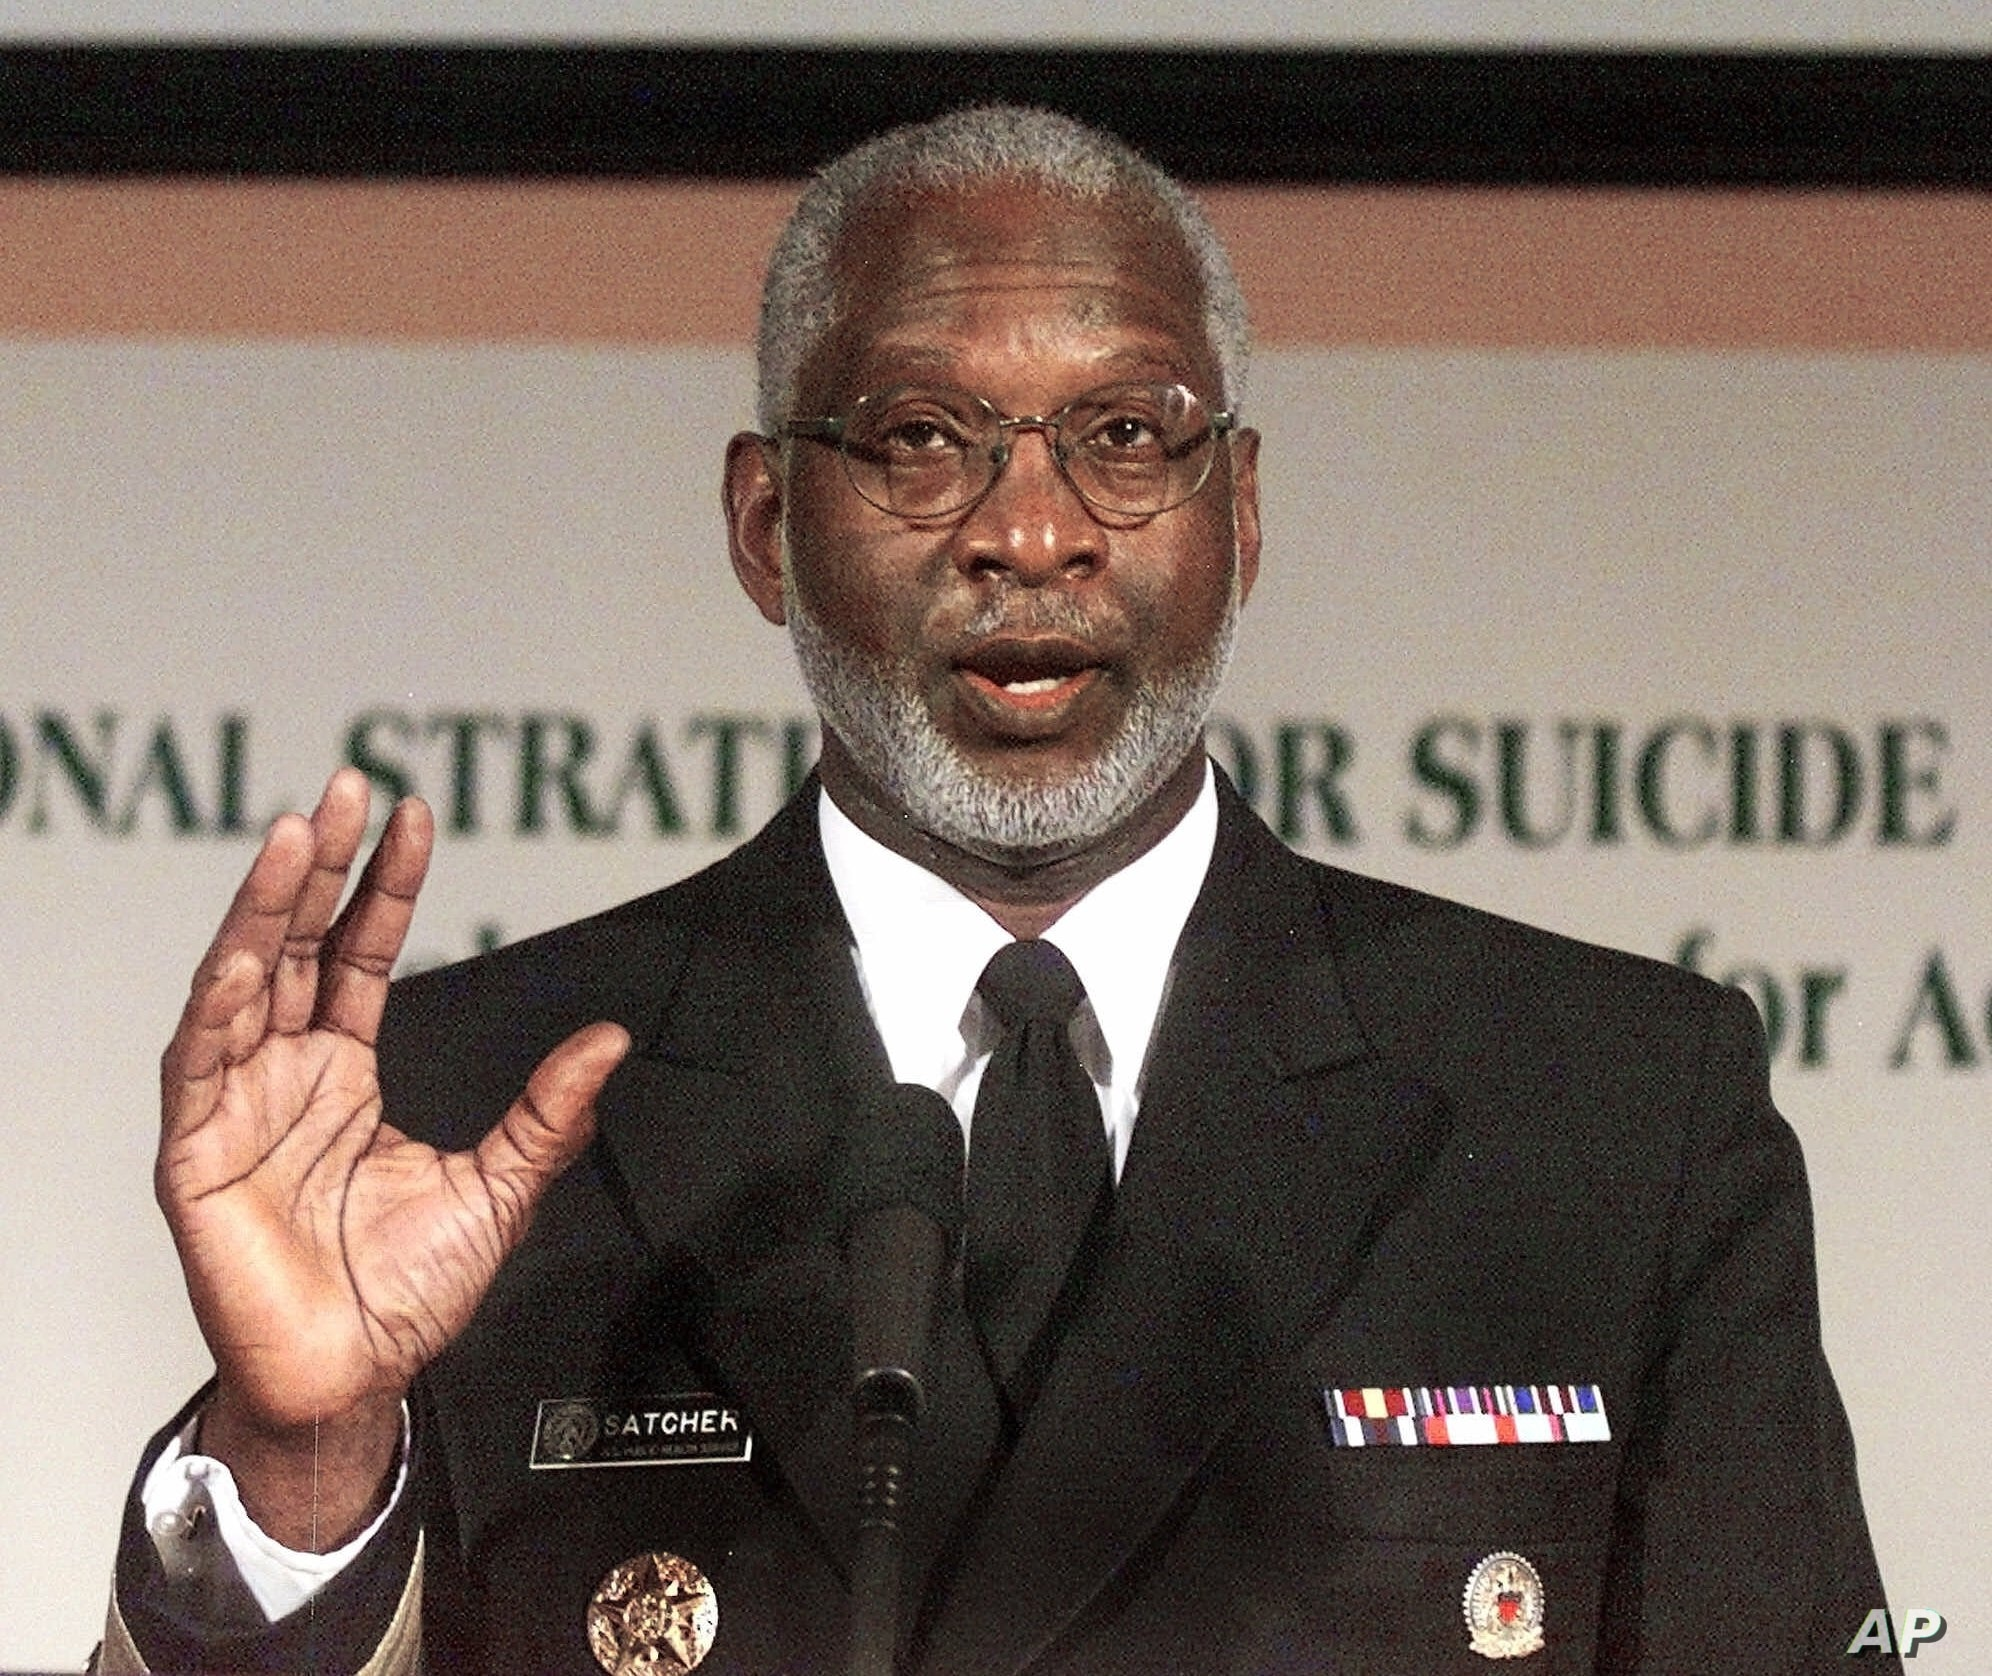 Former Us Surgeon General Eliminate Gaps In Health Care For Minorities Voice Of America English